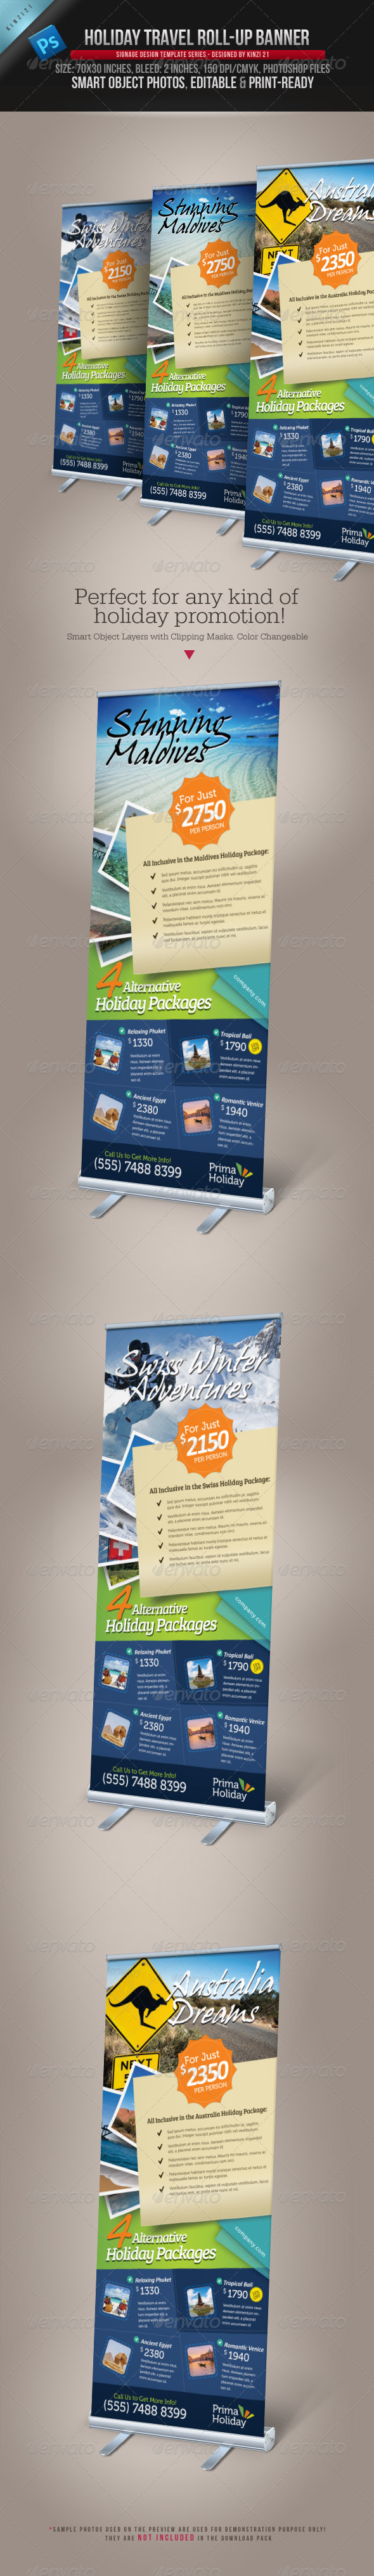 Holiday Travel Roll-up Banner - Signage Print Templates